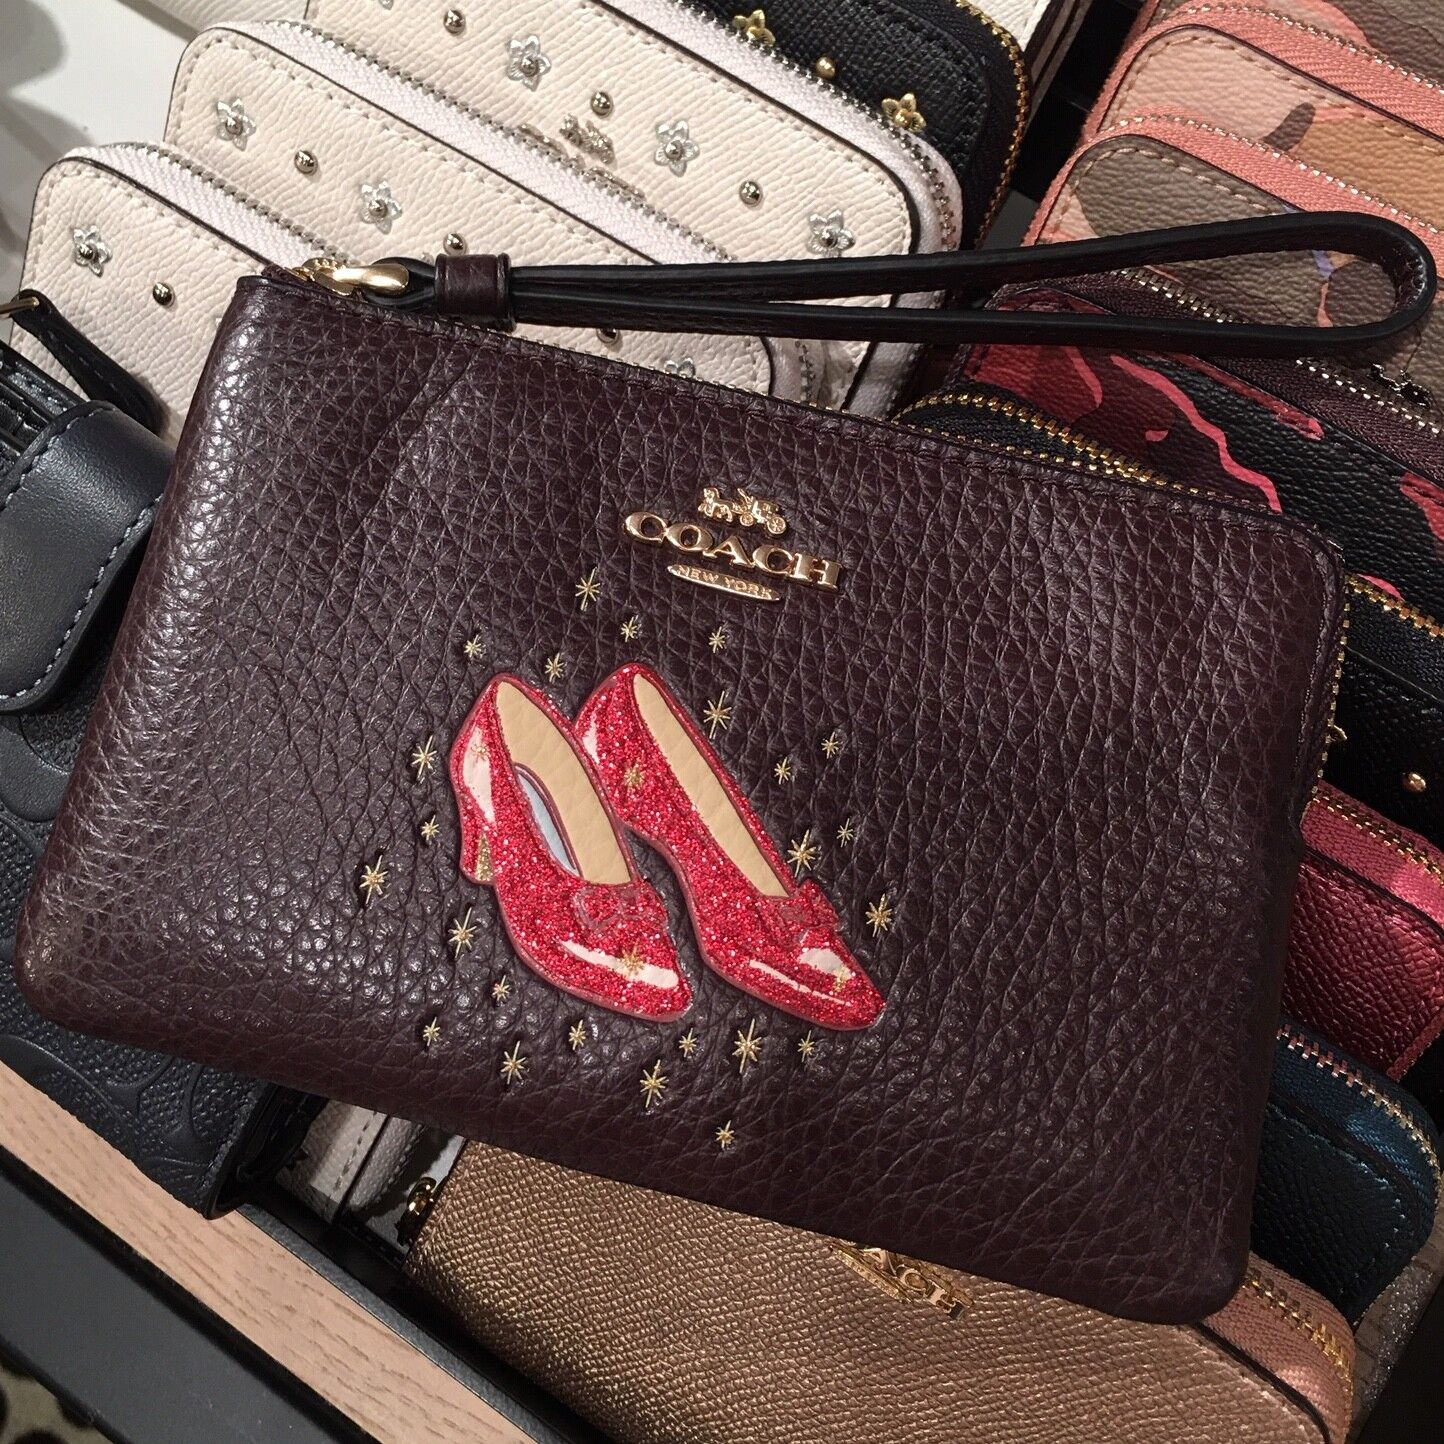 New Coach F58032 F58035 Corner Zip Wristlet With Gift Box New With Tags Wizard Of Oz Oxblood